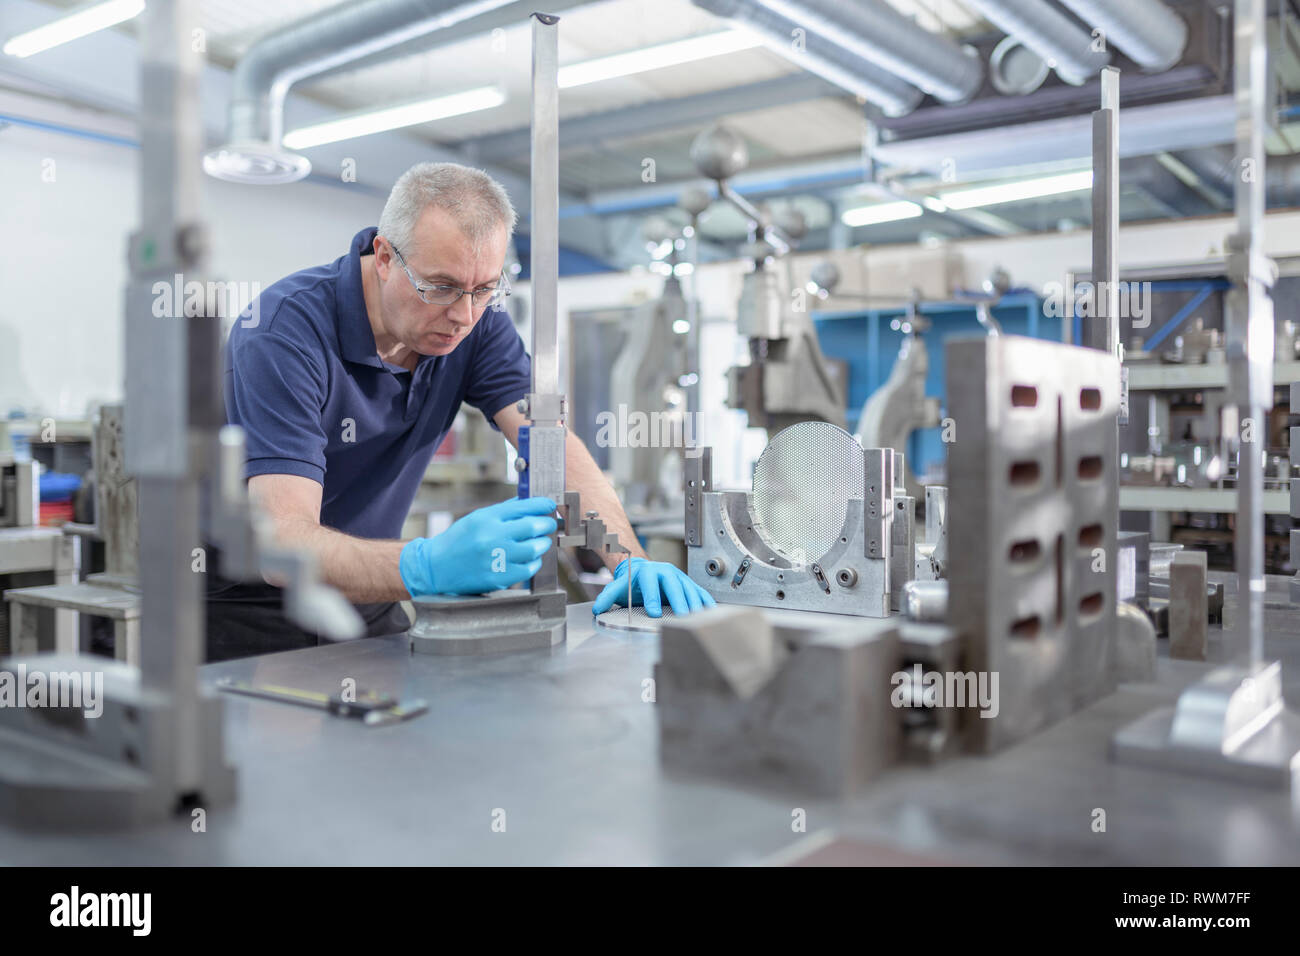 Engineer measuring part in engineering factory Stock Photo